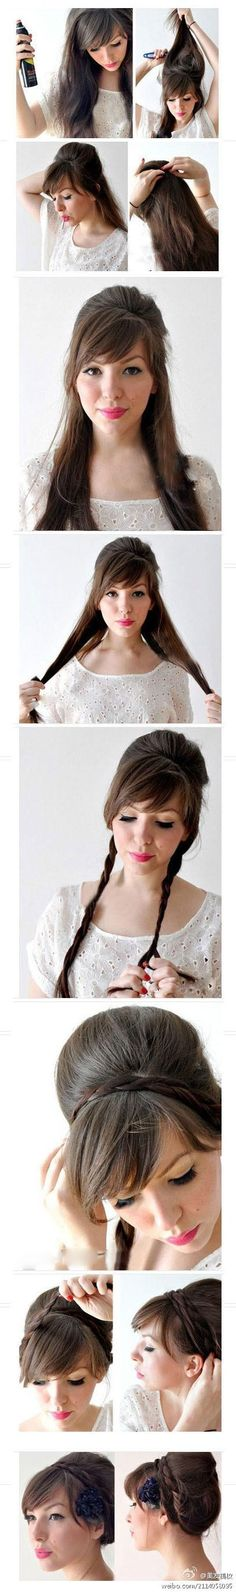 Nice little Up do with a bump and braid